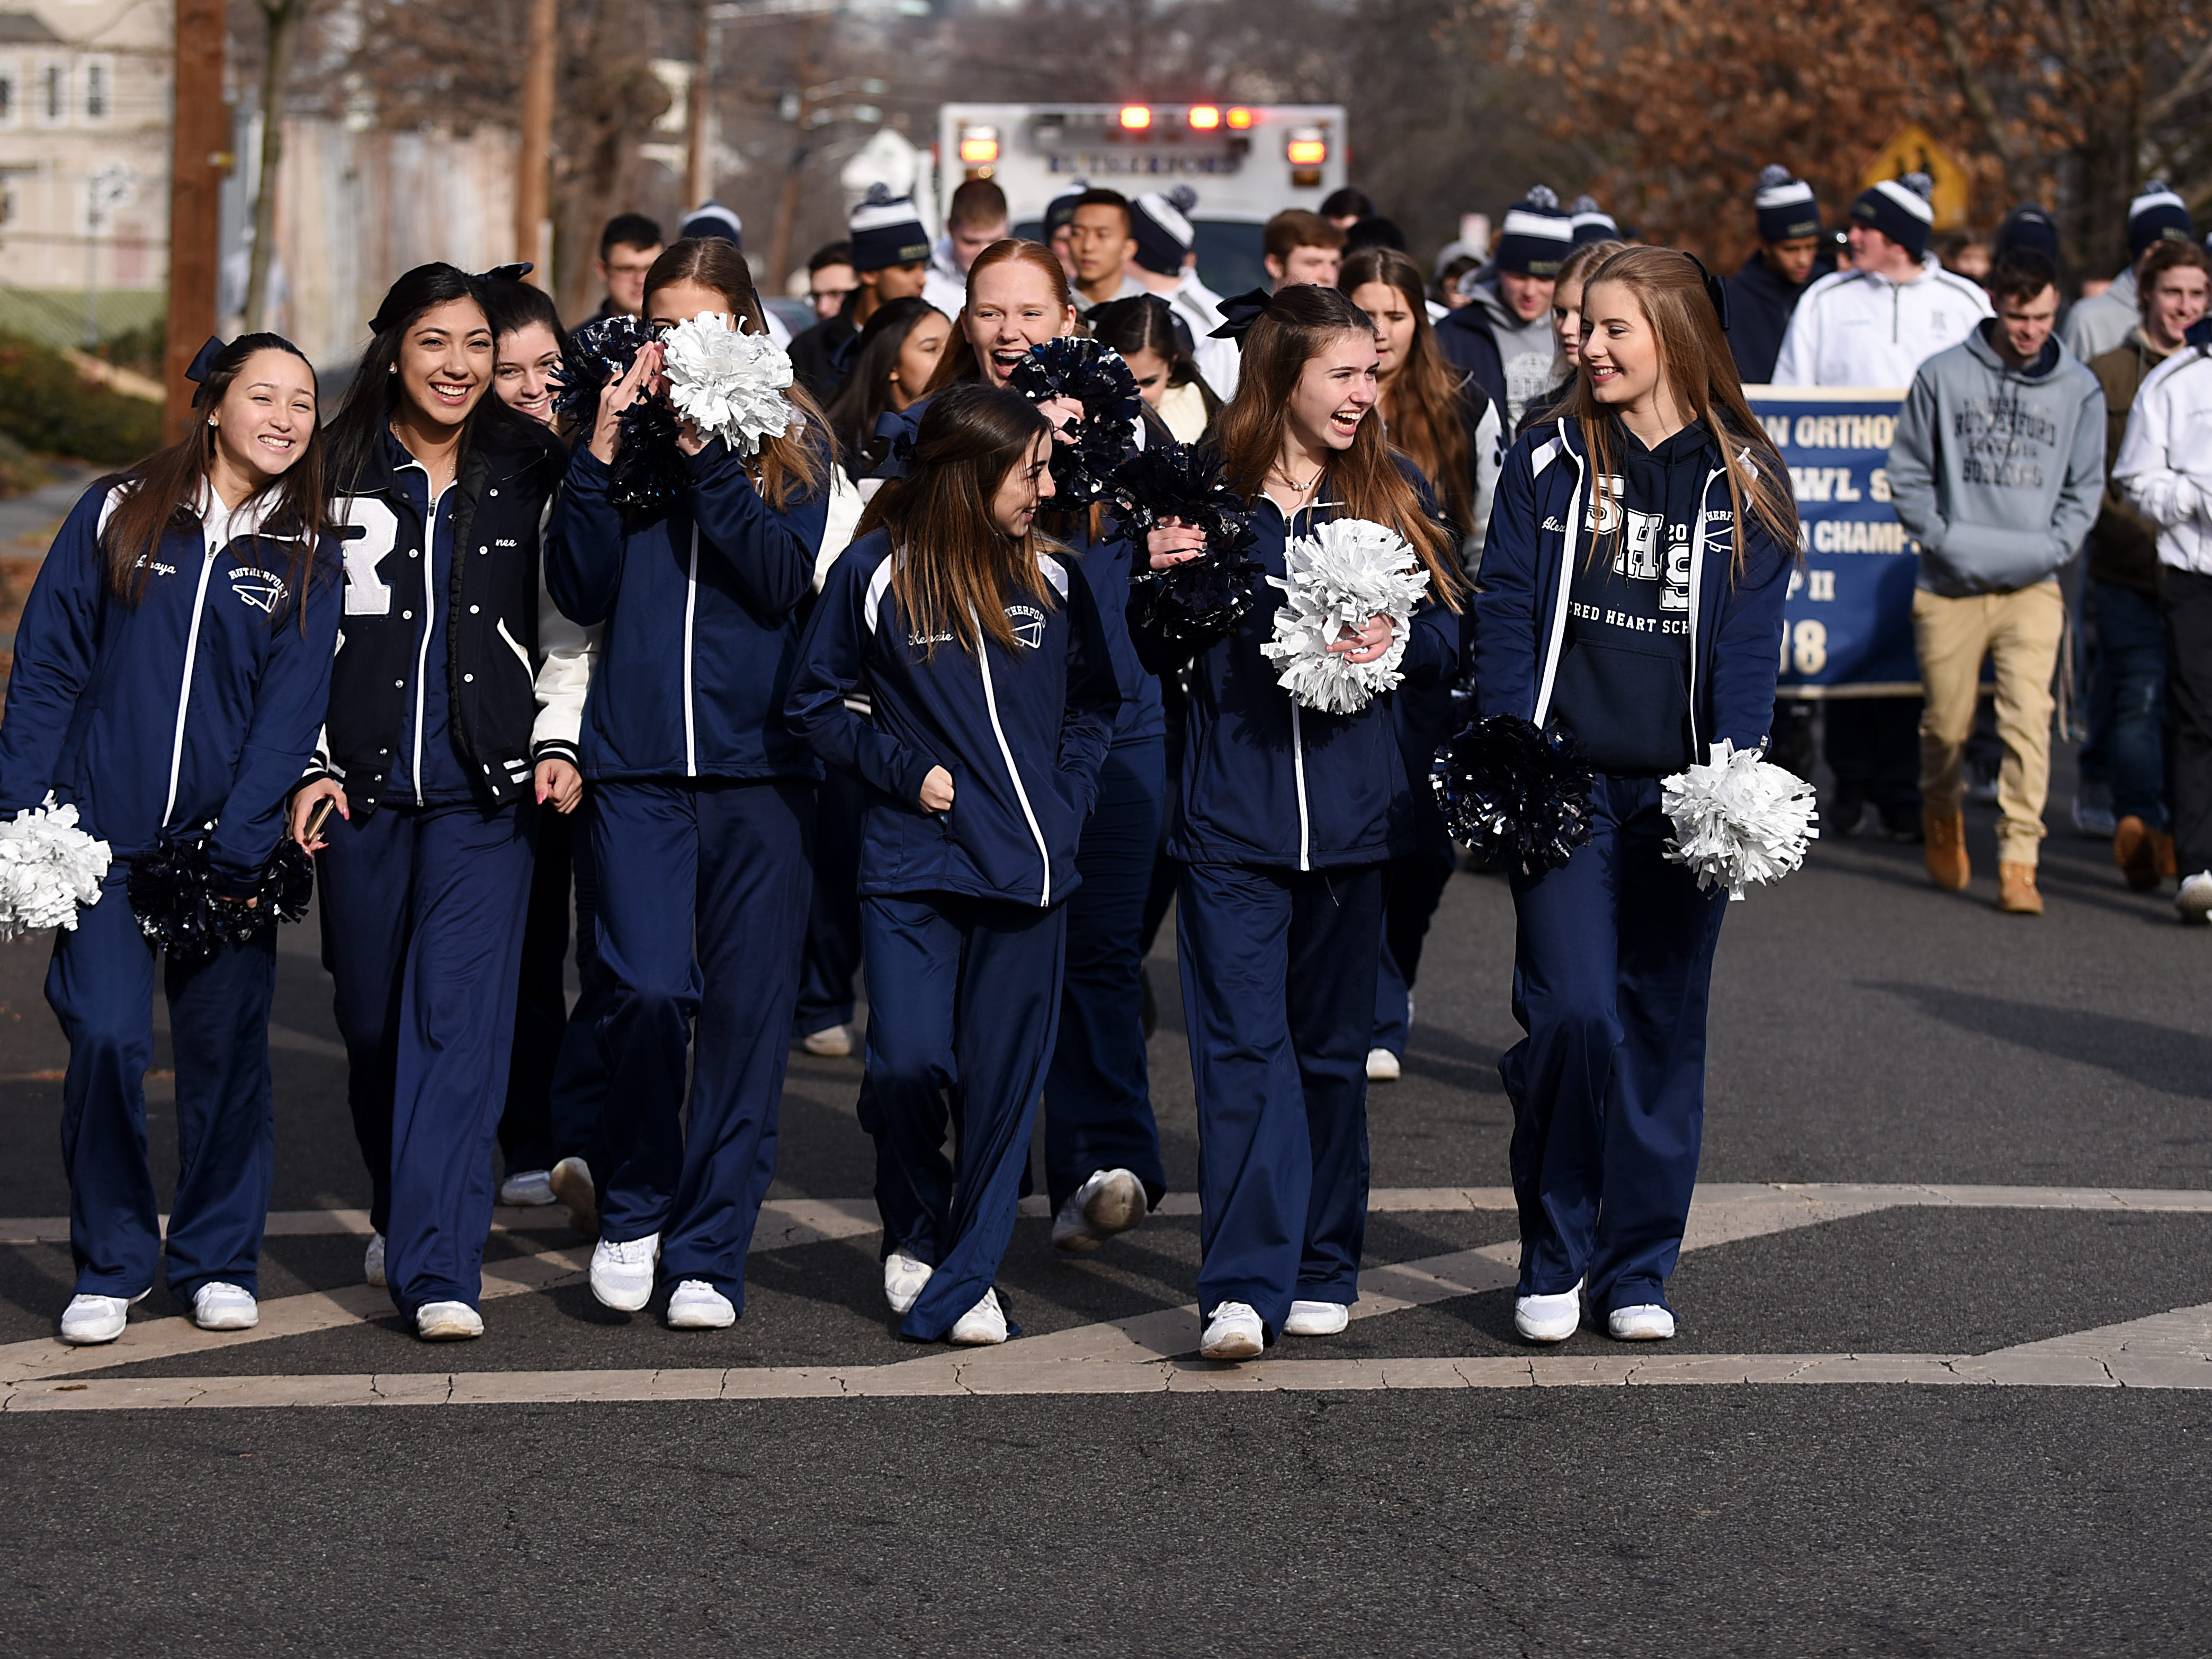 Cheerleaders march in the Rutherford Football parade in Rutherford on Saturday December 1, 2018.